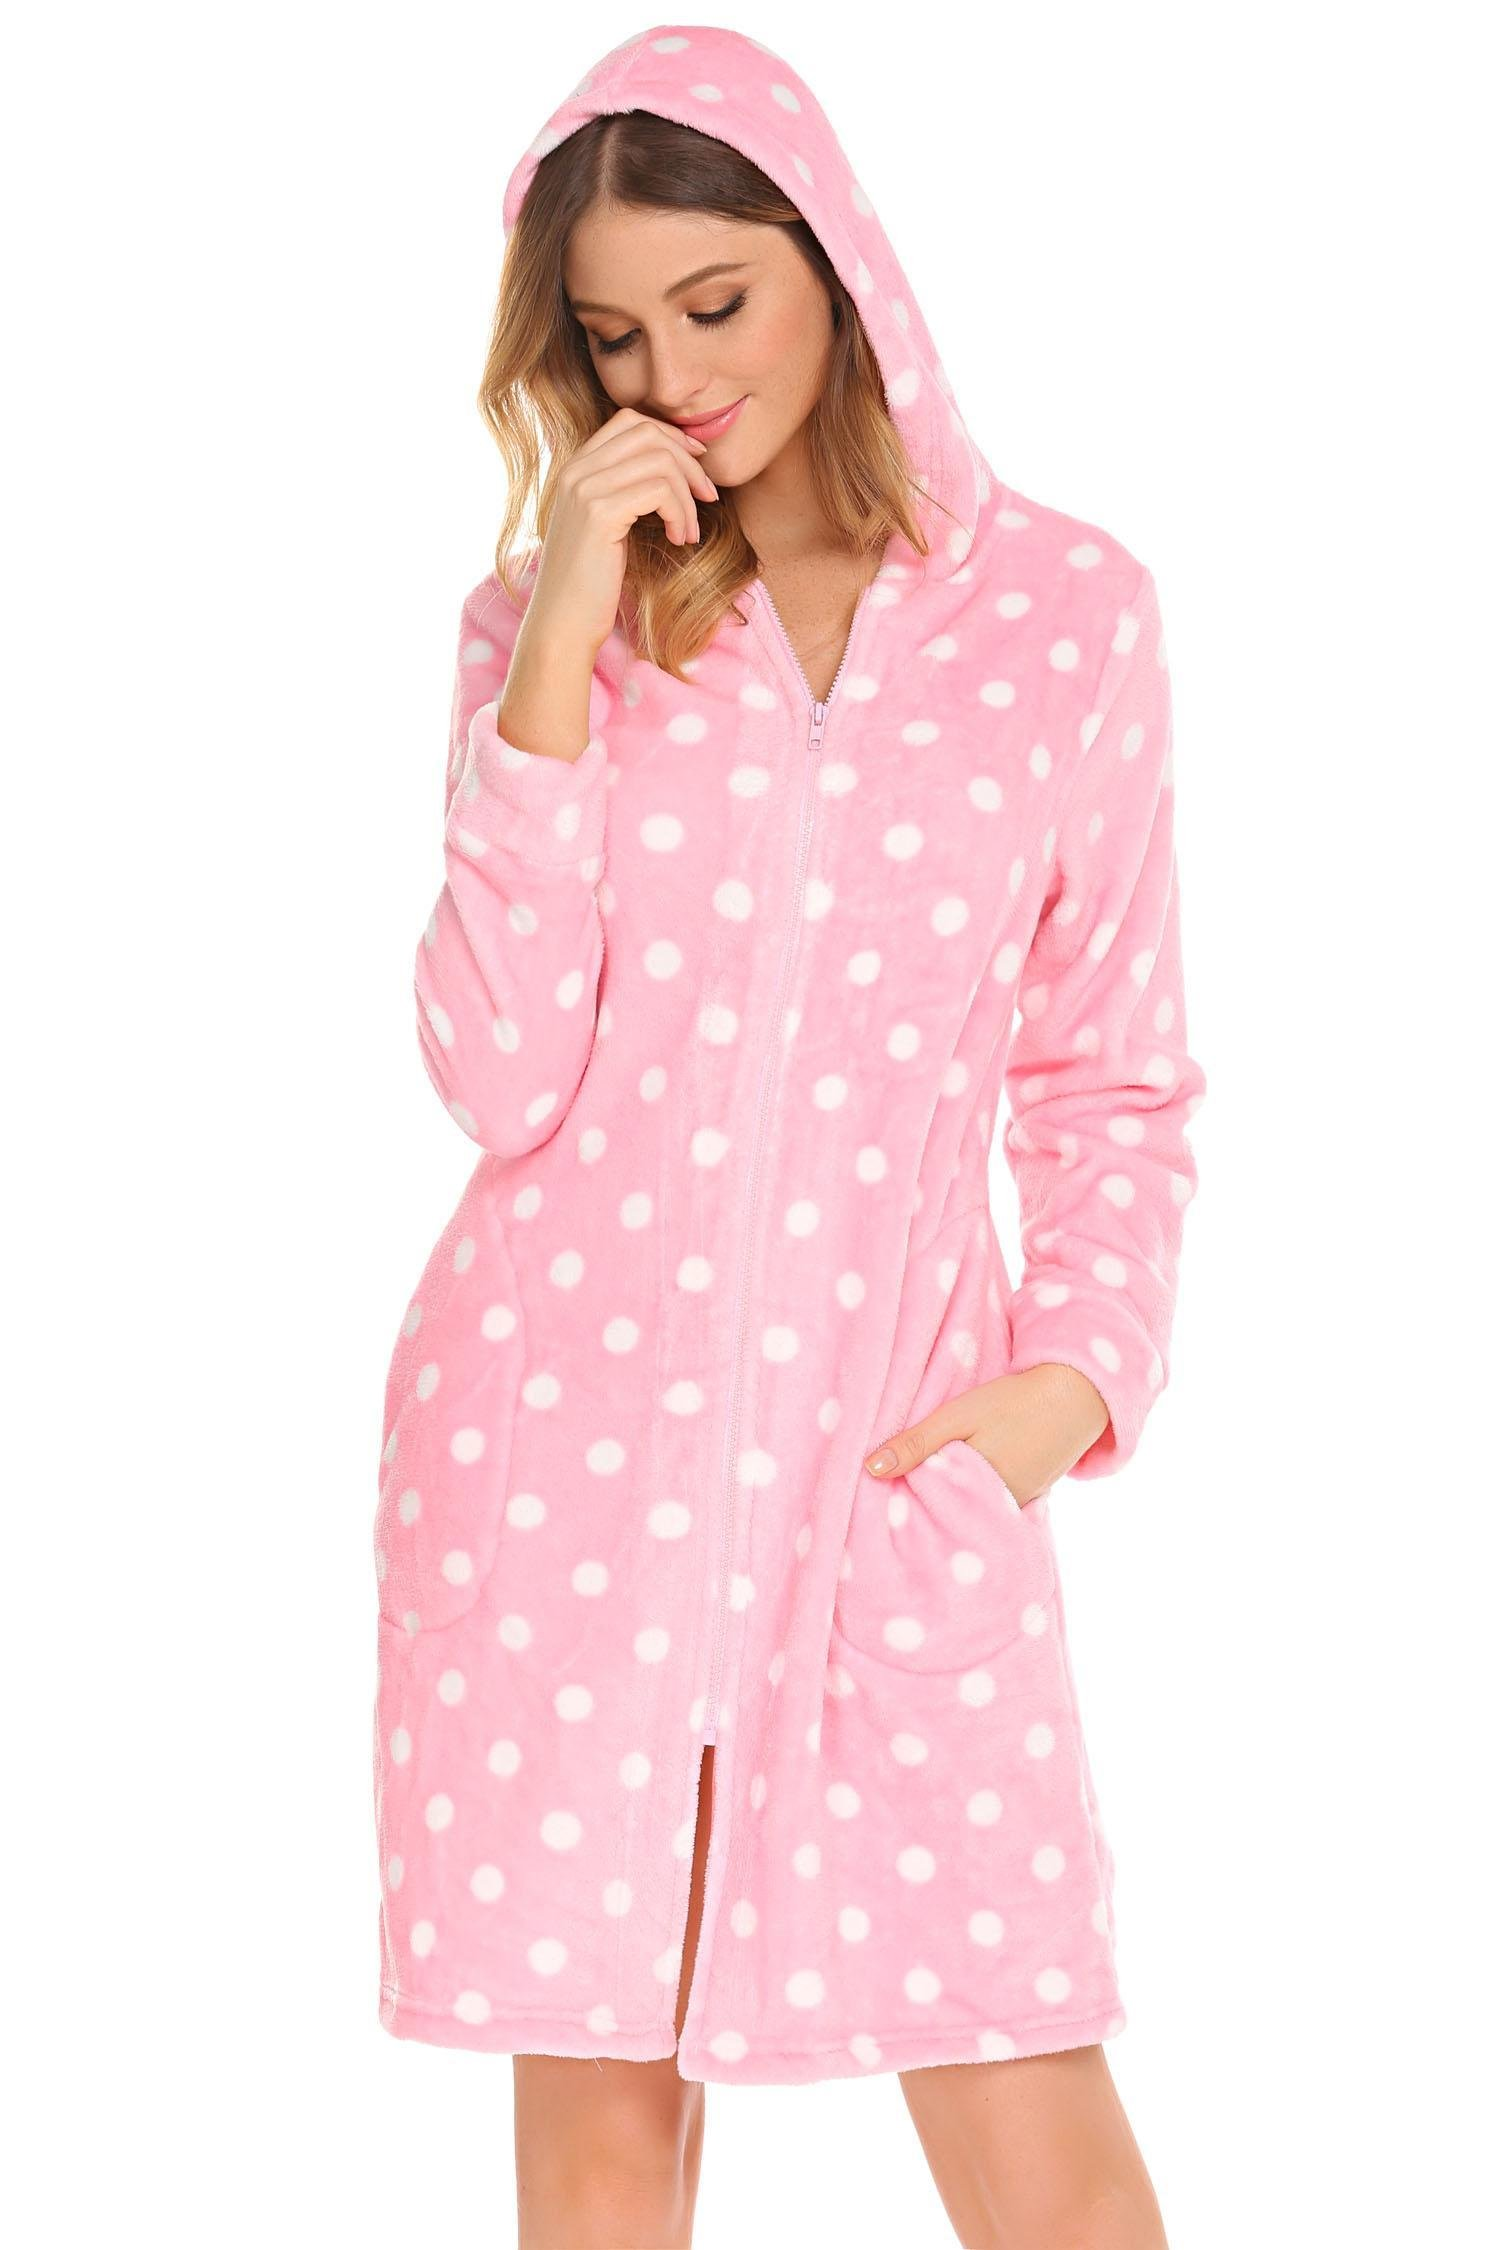 Vansop Long Sleeve Zippered Terry Robe Soft Bathrobe House Coat, Pink, XL